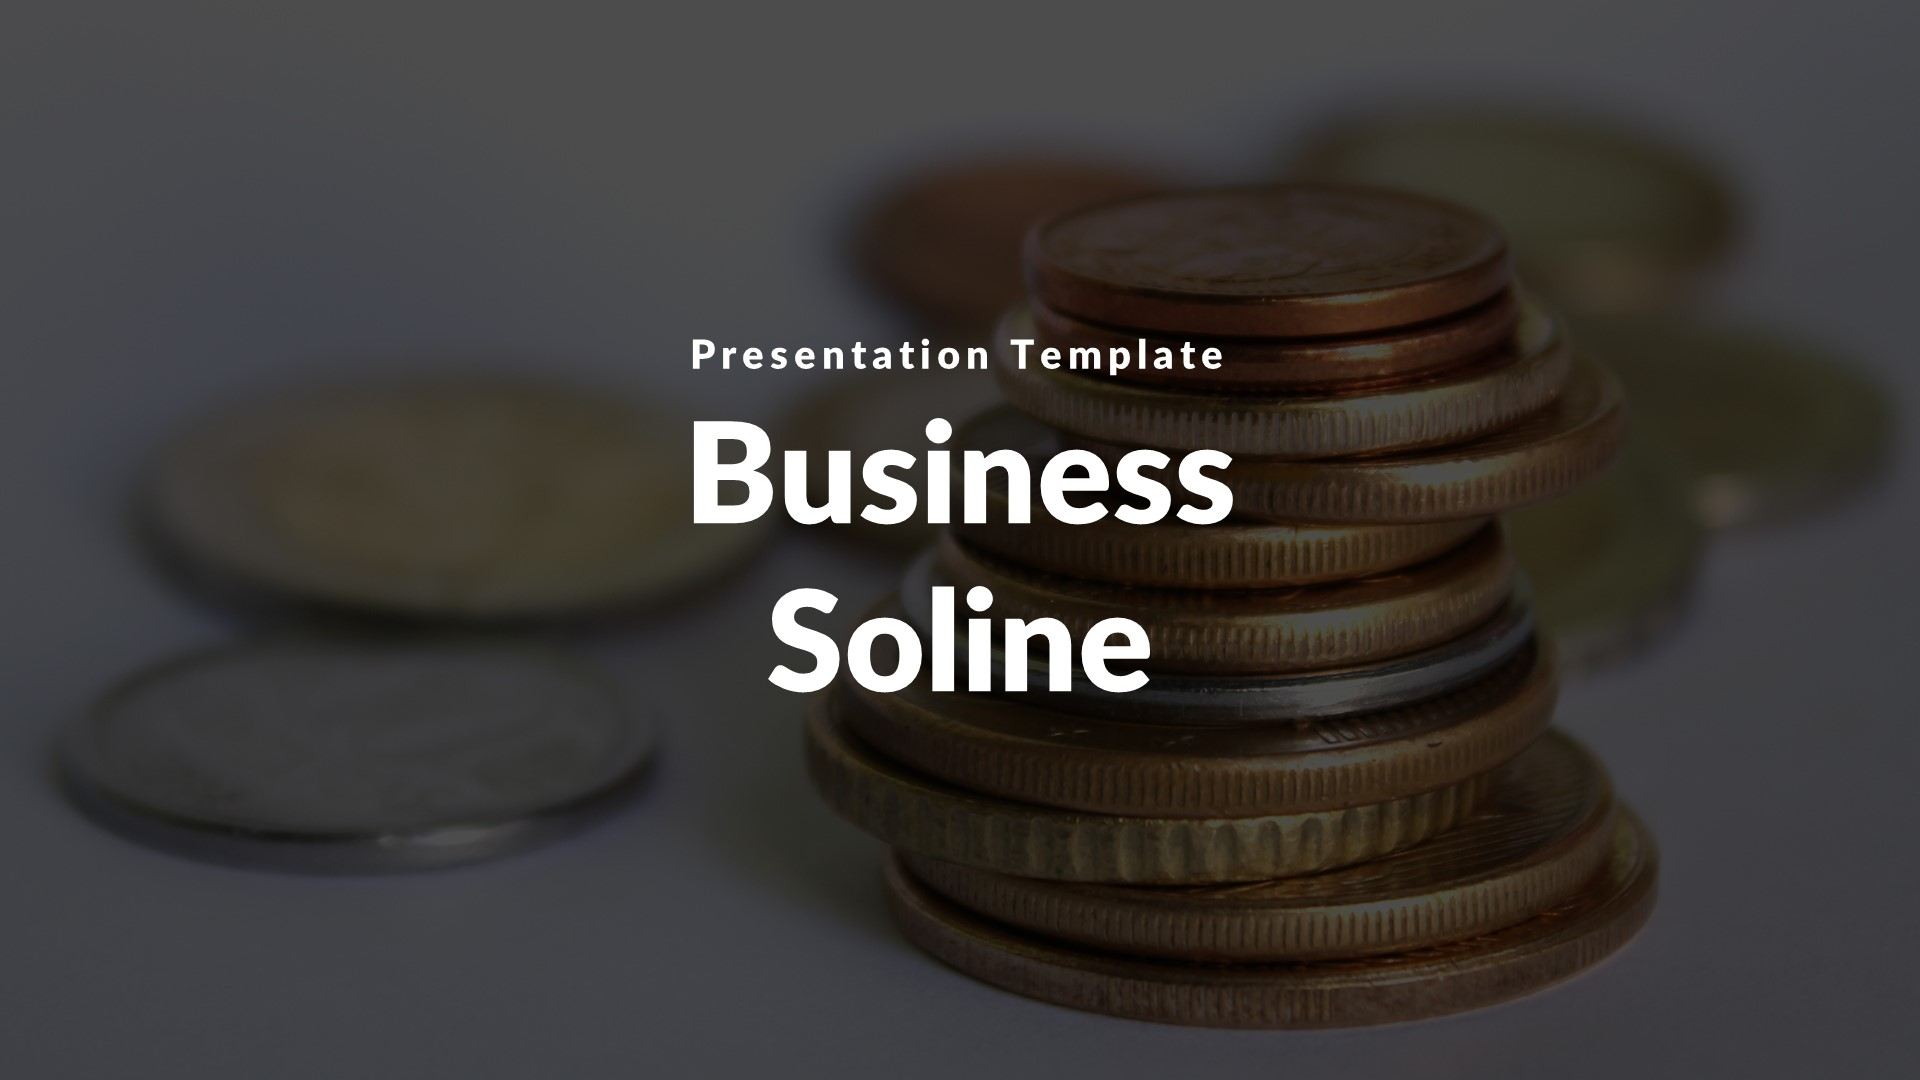 Business Soline Keynote Template